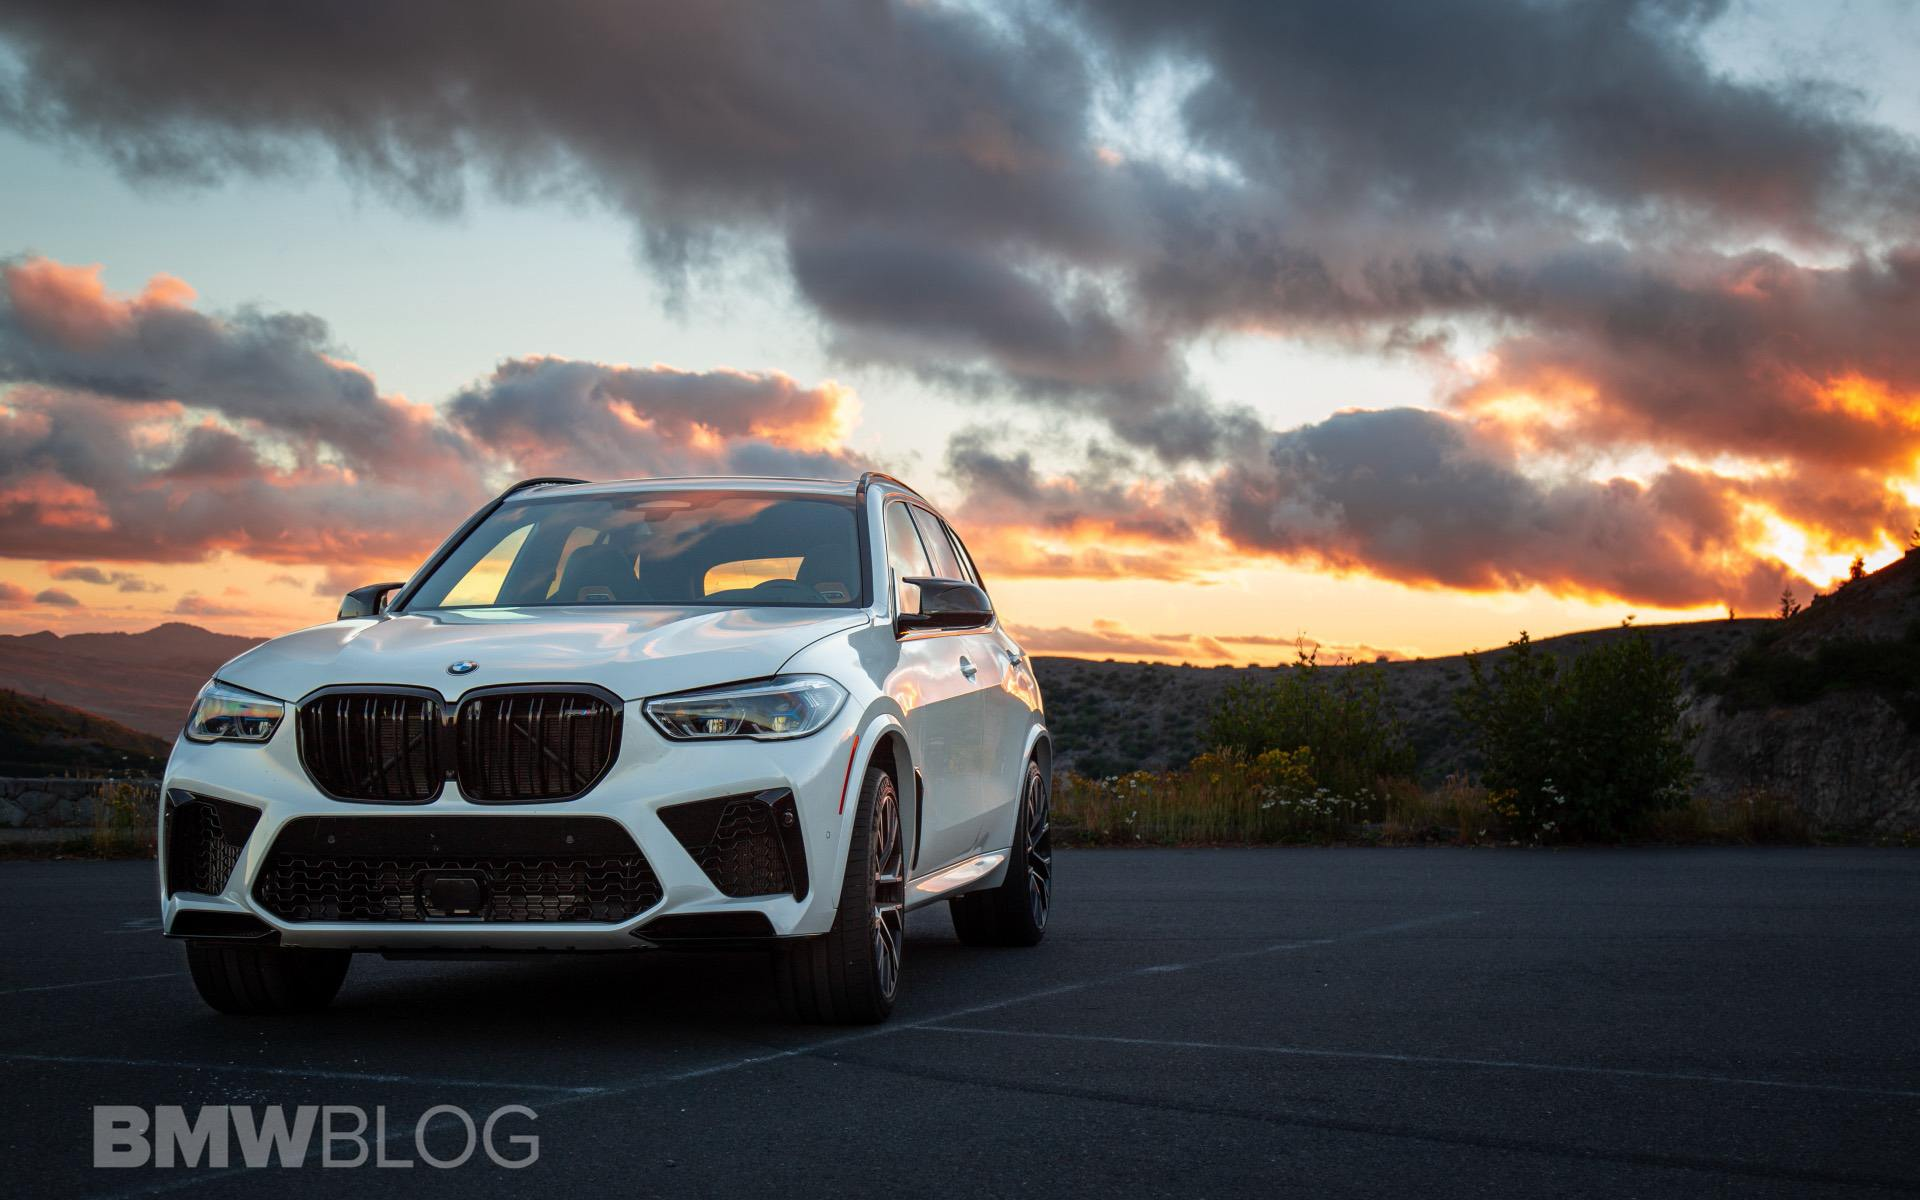 2021 bmw x5 m competition road trip 09